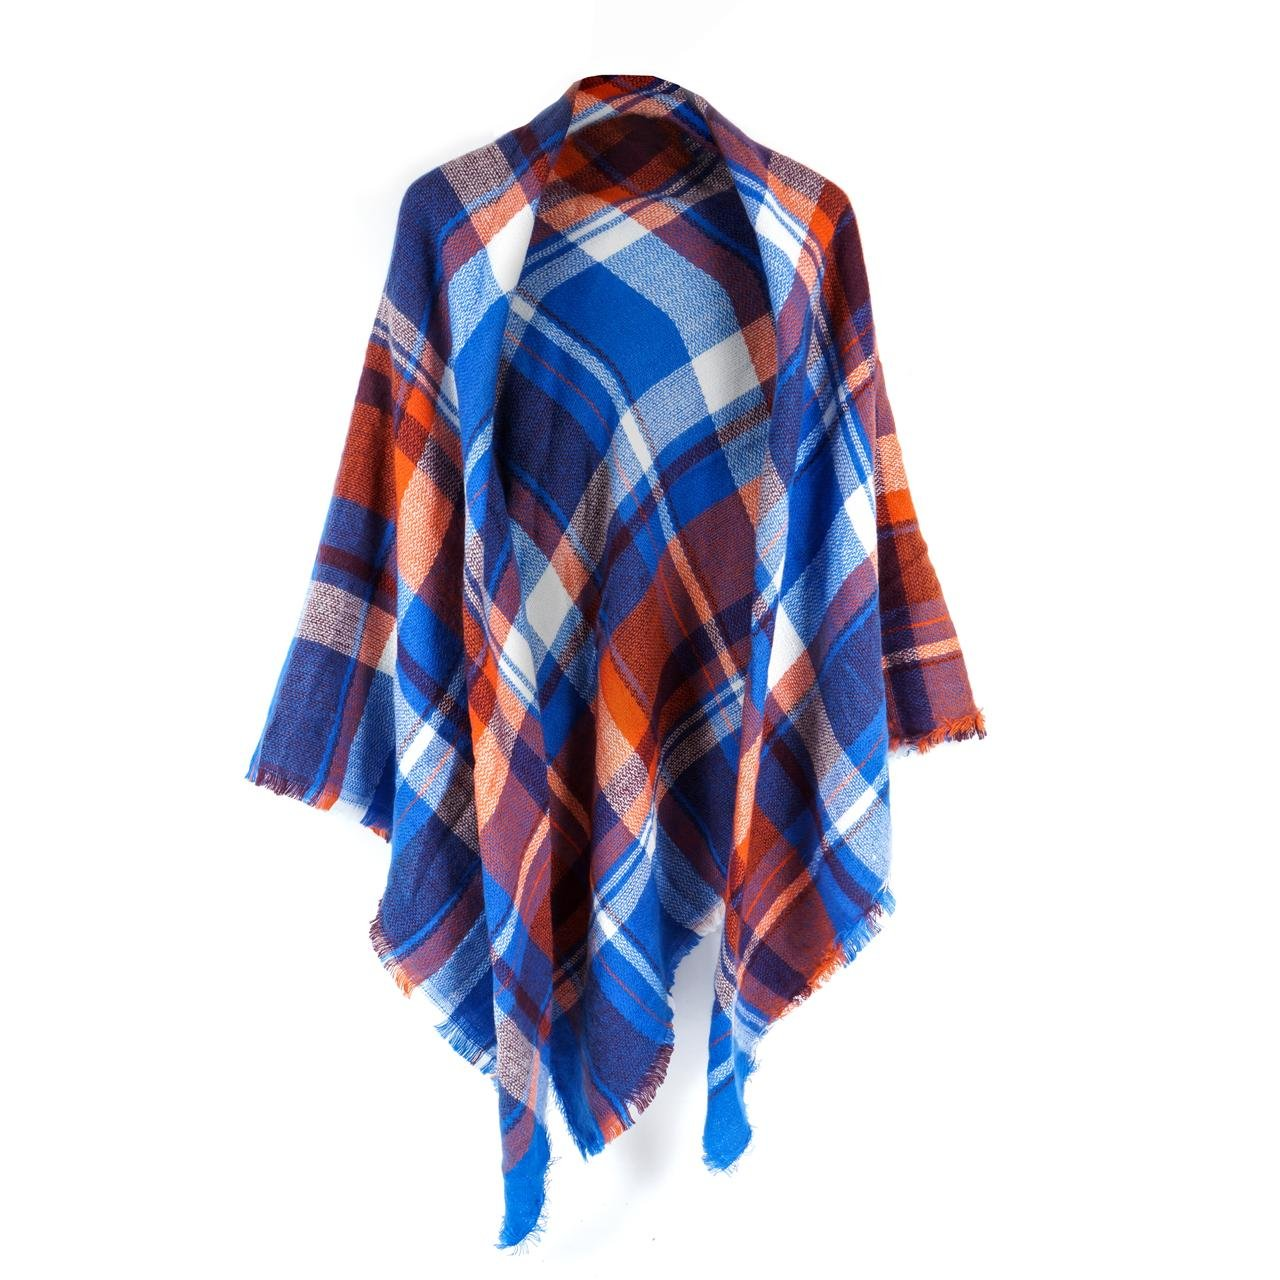 Women's Cozy Tartan Scarf Wrap Shawl Neck Stole Warm Plaid Checked Pashmina (Blue Orange)